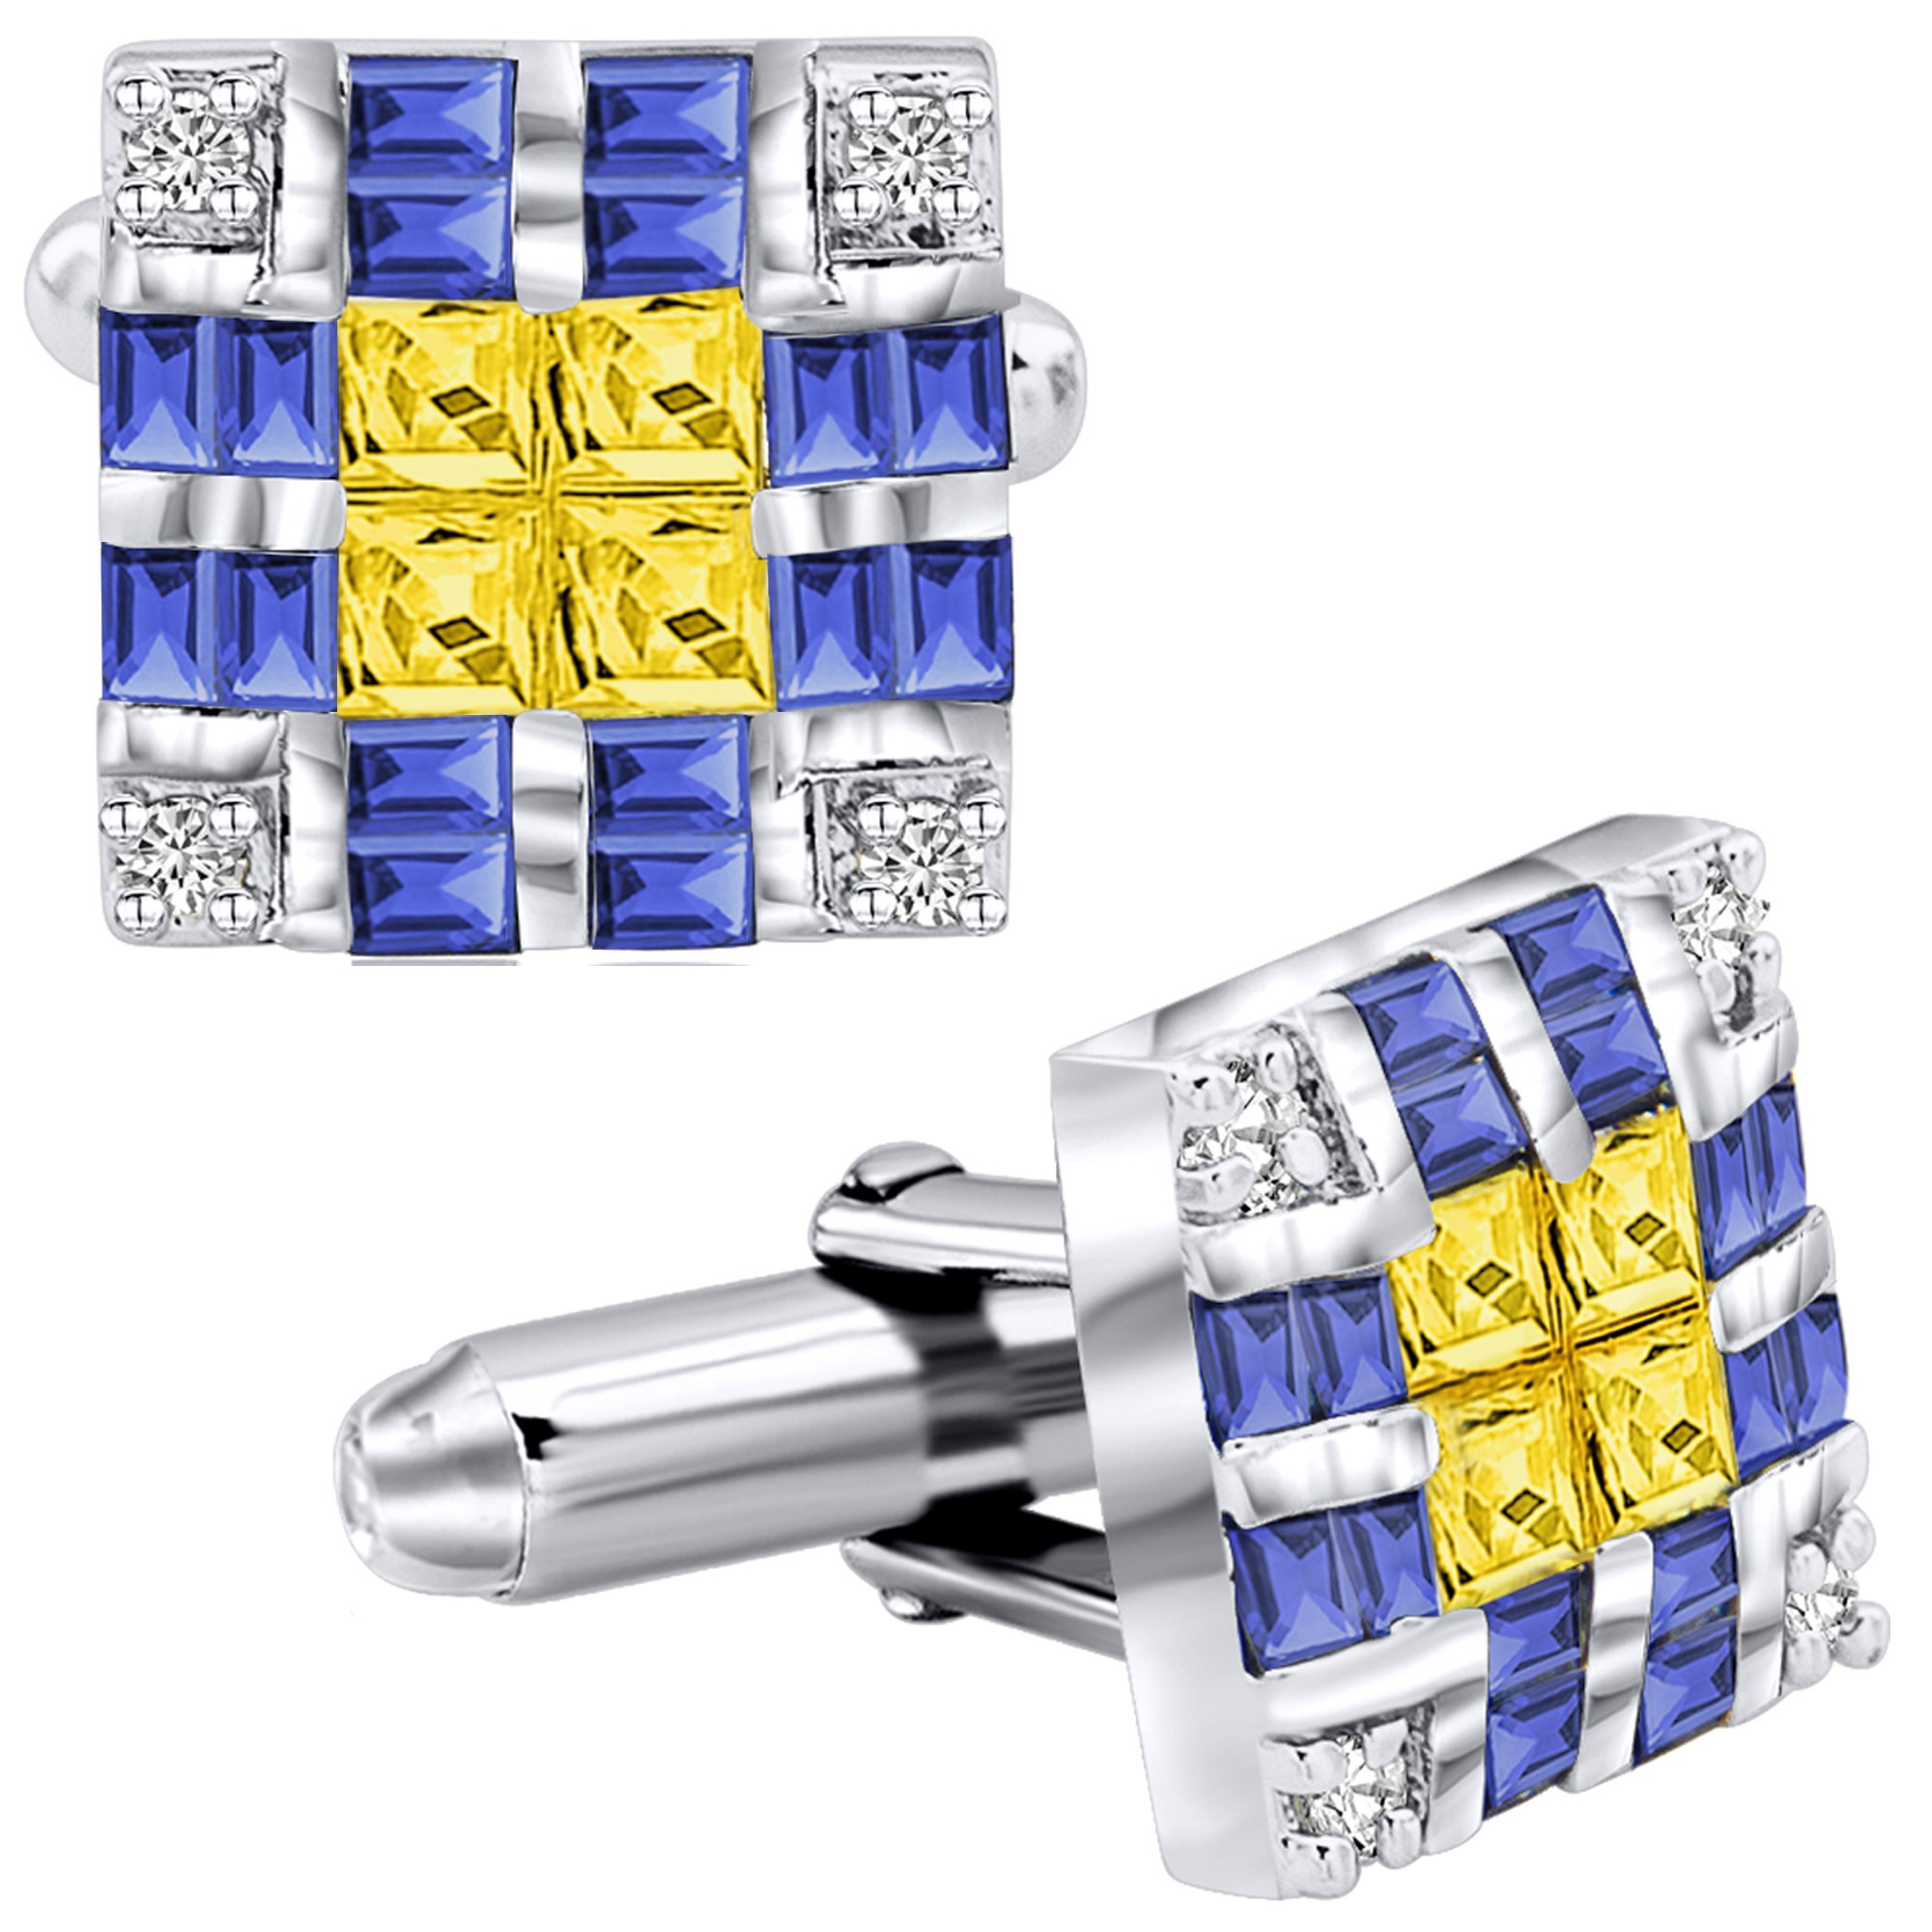 Men's Sterling Silver .925 Original Design Cufflinks with Canary Yellow Princess-Cut, Azure Blue Baguette-Cut and Round-Cut CZ Stones, Platinum Plated, Solid Hinges, 15 mm